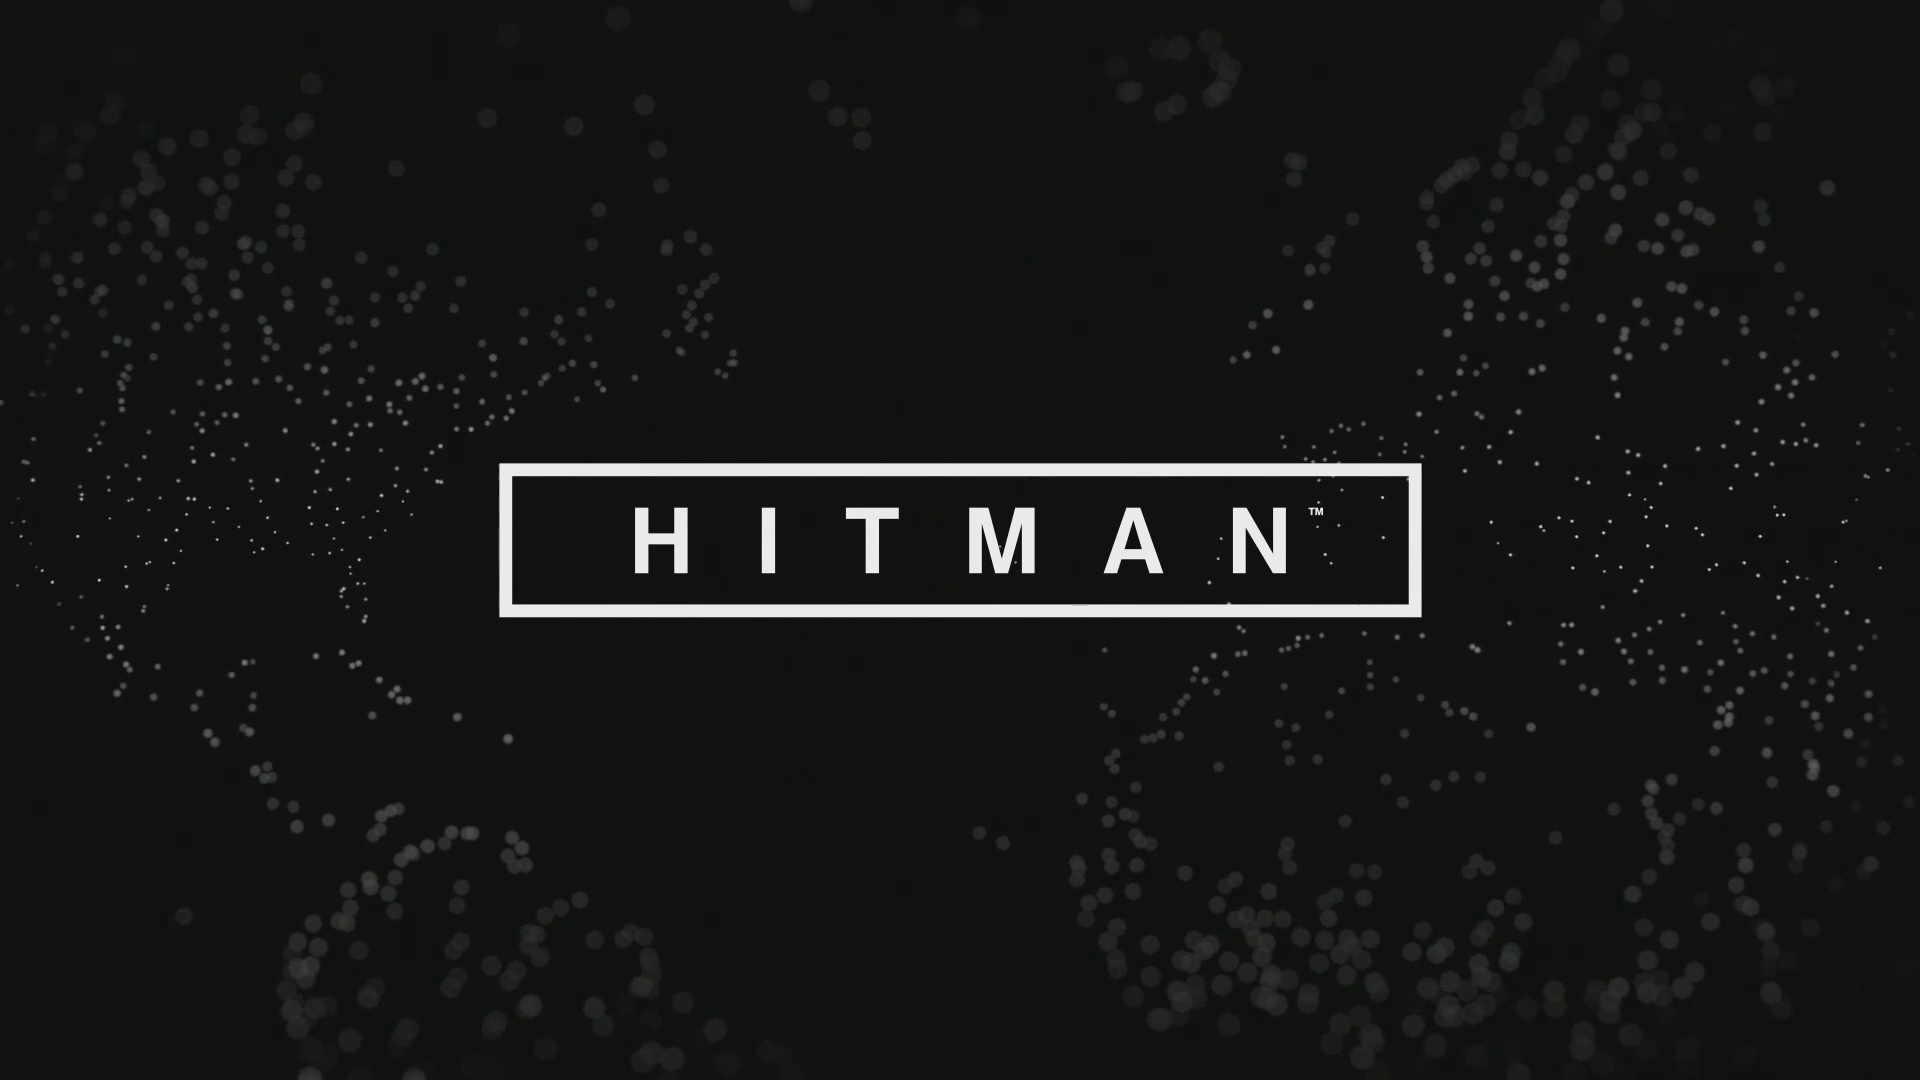 Hitman 2016 Full HD Wallpaper And Background Image